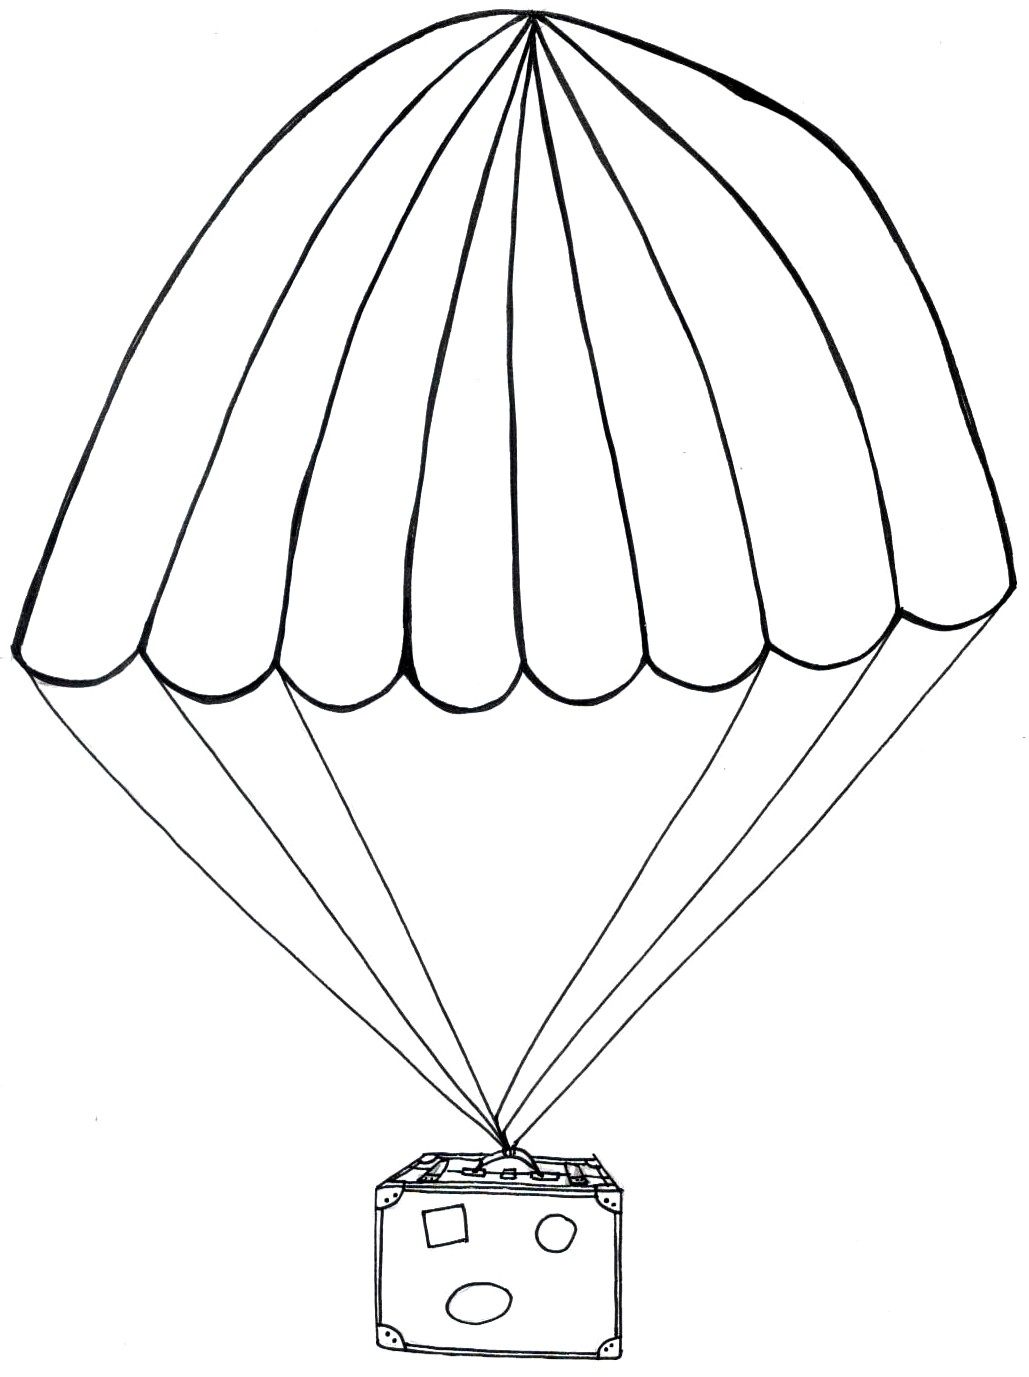 1029x1377 Parachute Coloring Pages